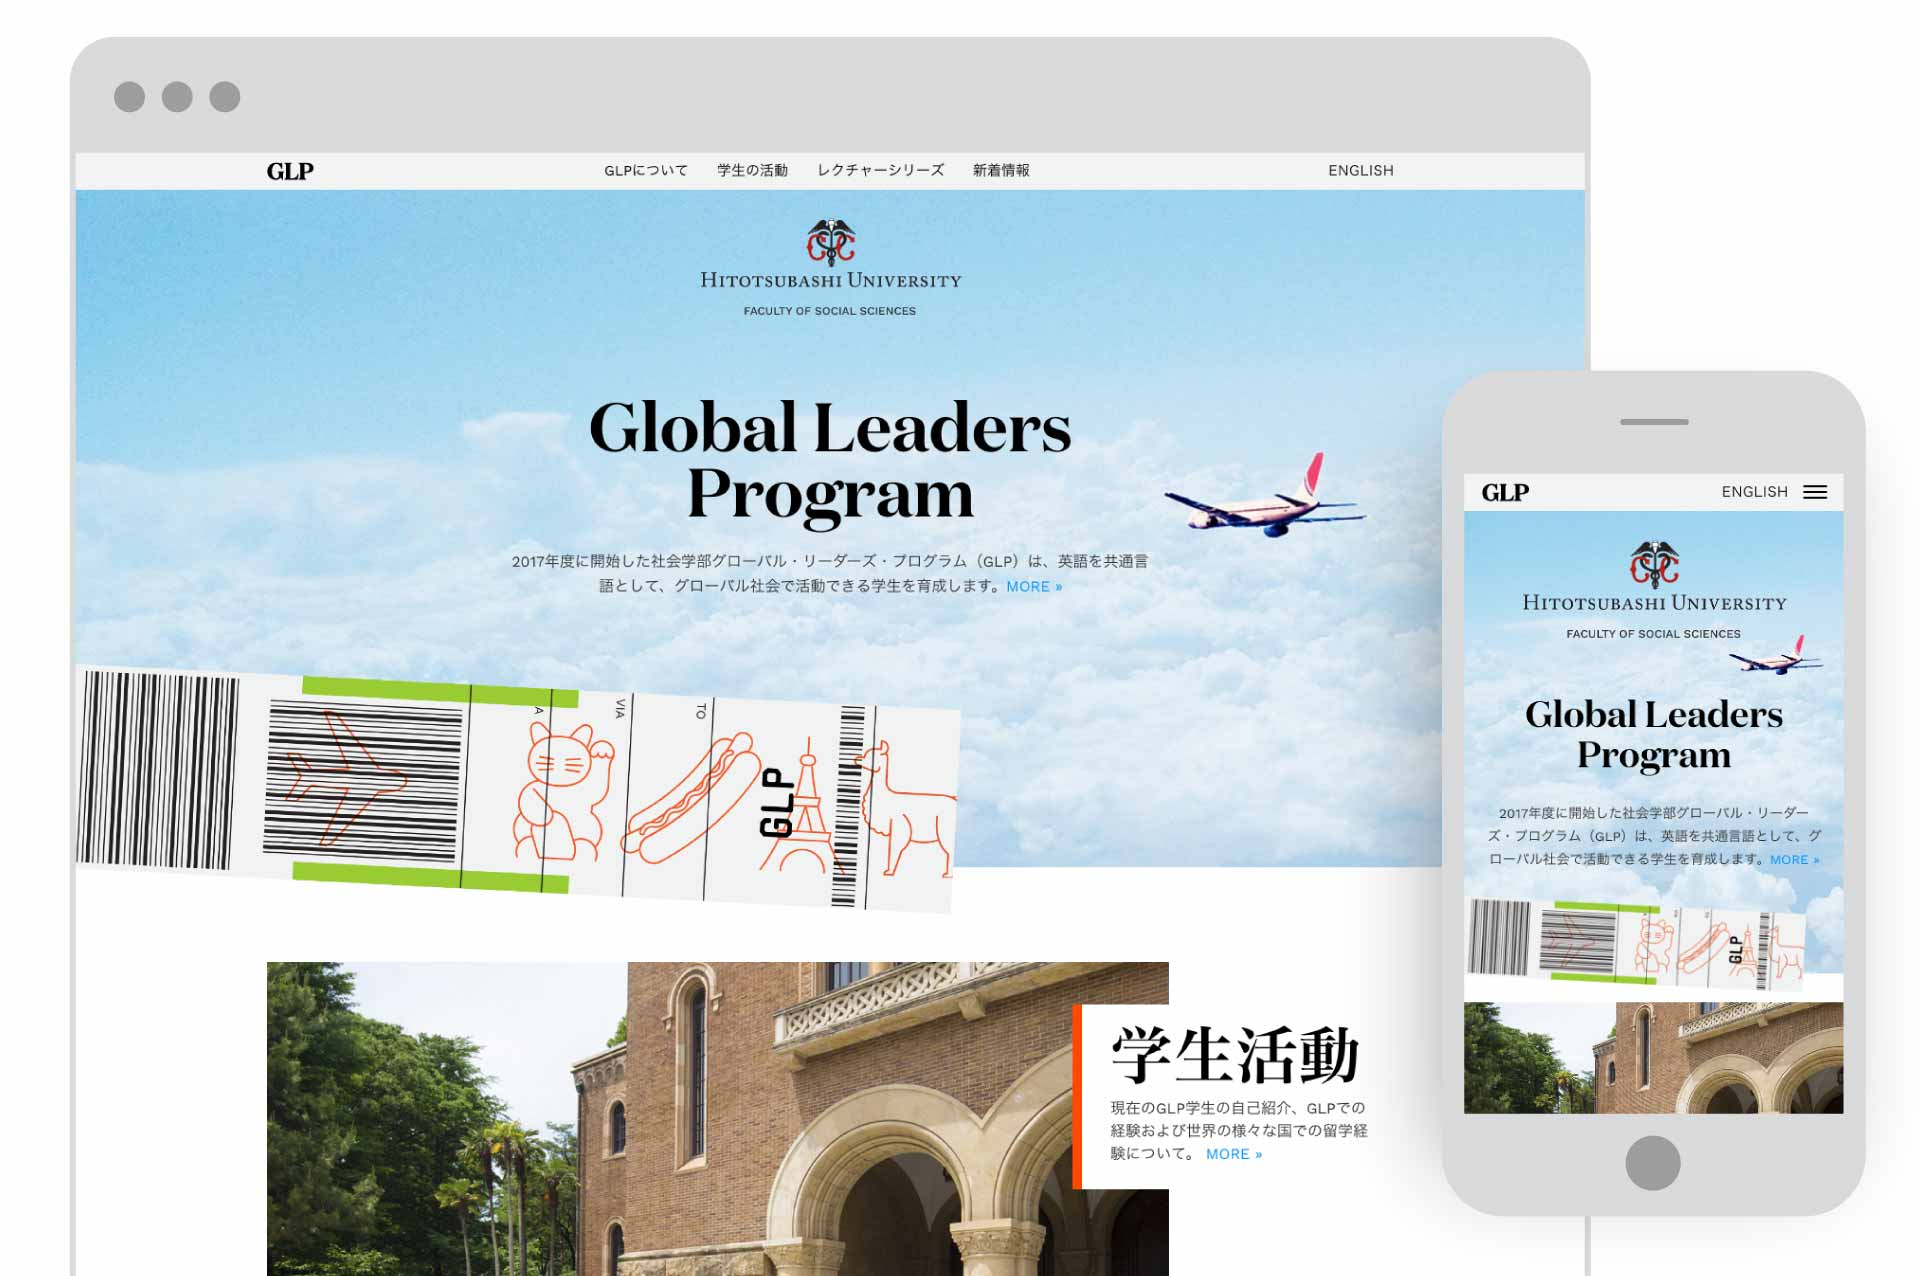 Hitotsubashi University - Global Leaders Program - Japanese Homepage Template